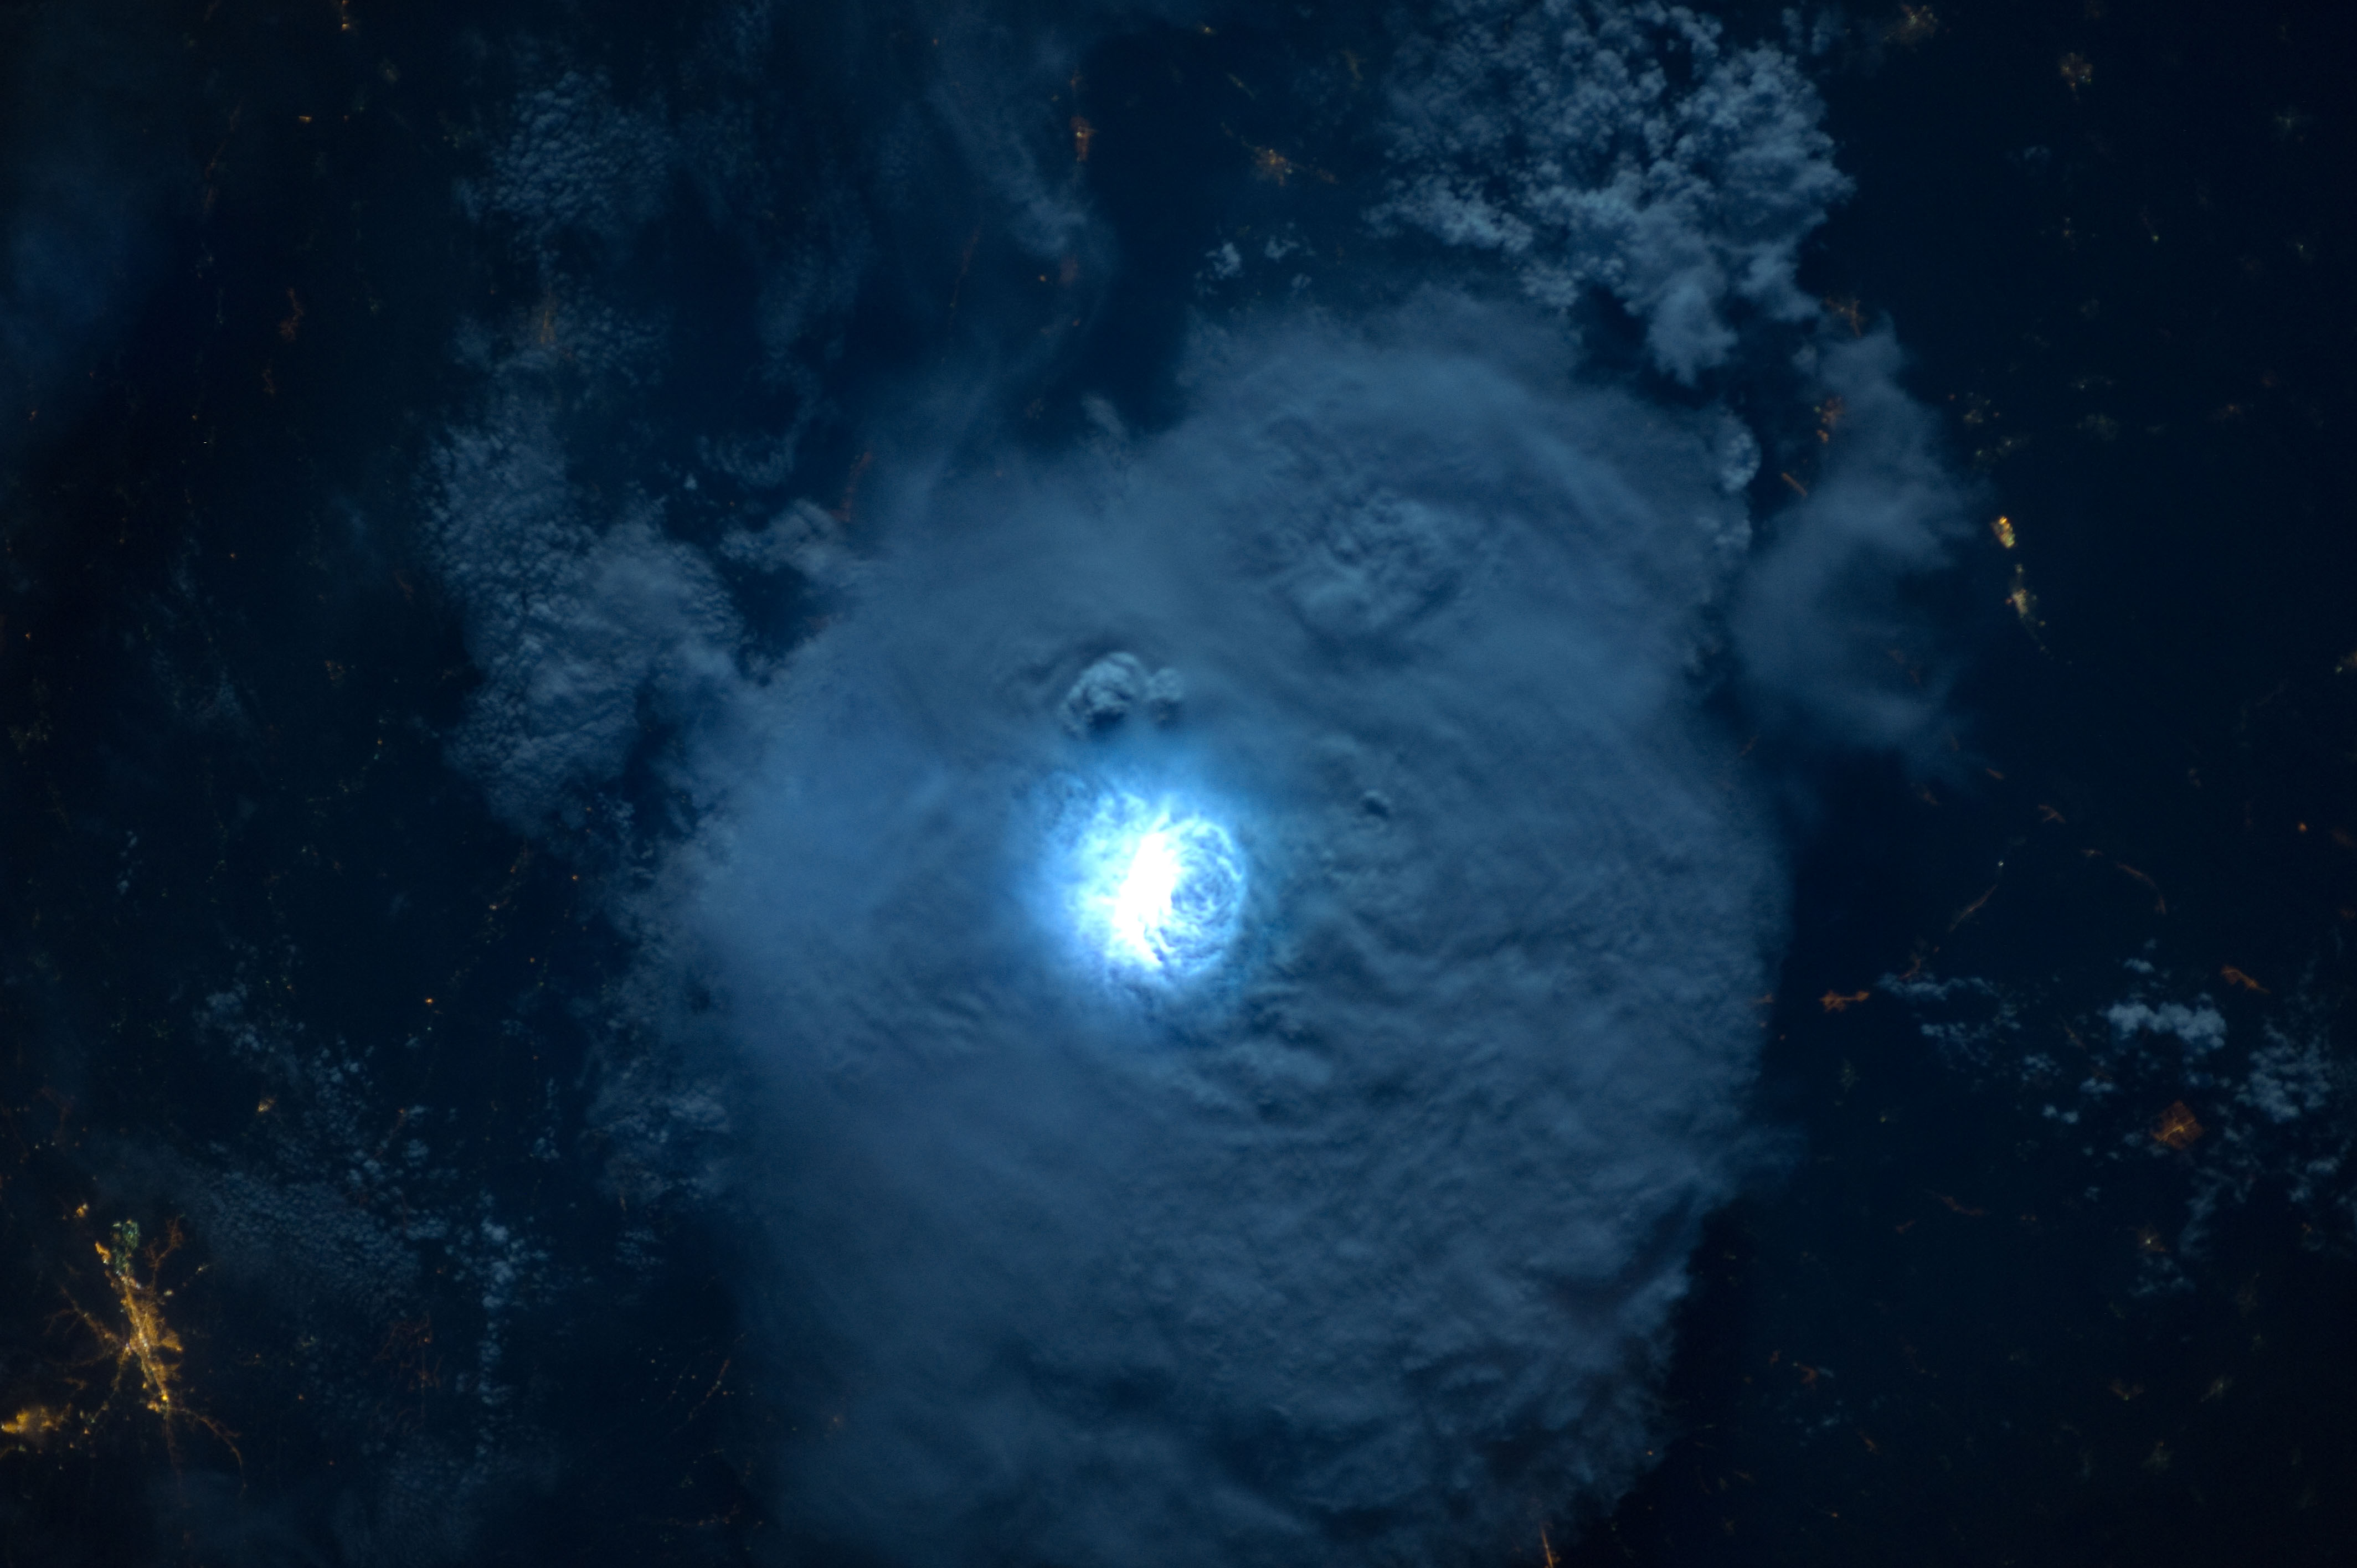 Space in Images - 2015 - 01 - Striking lightning from space